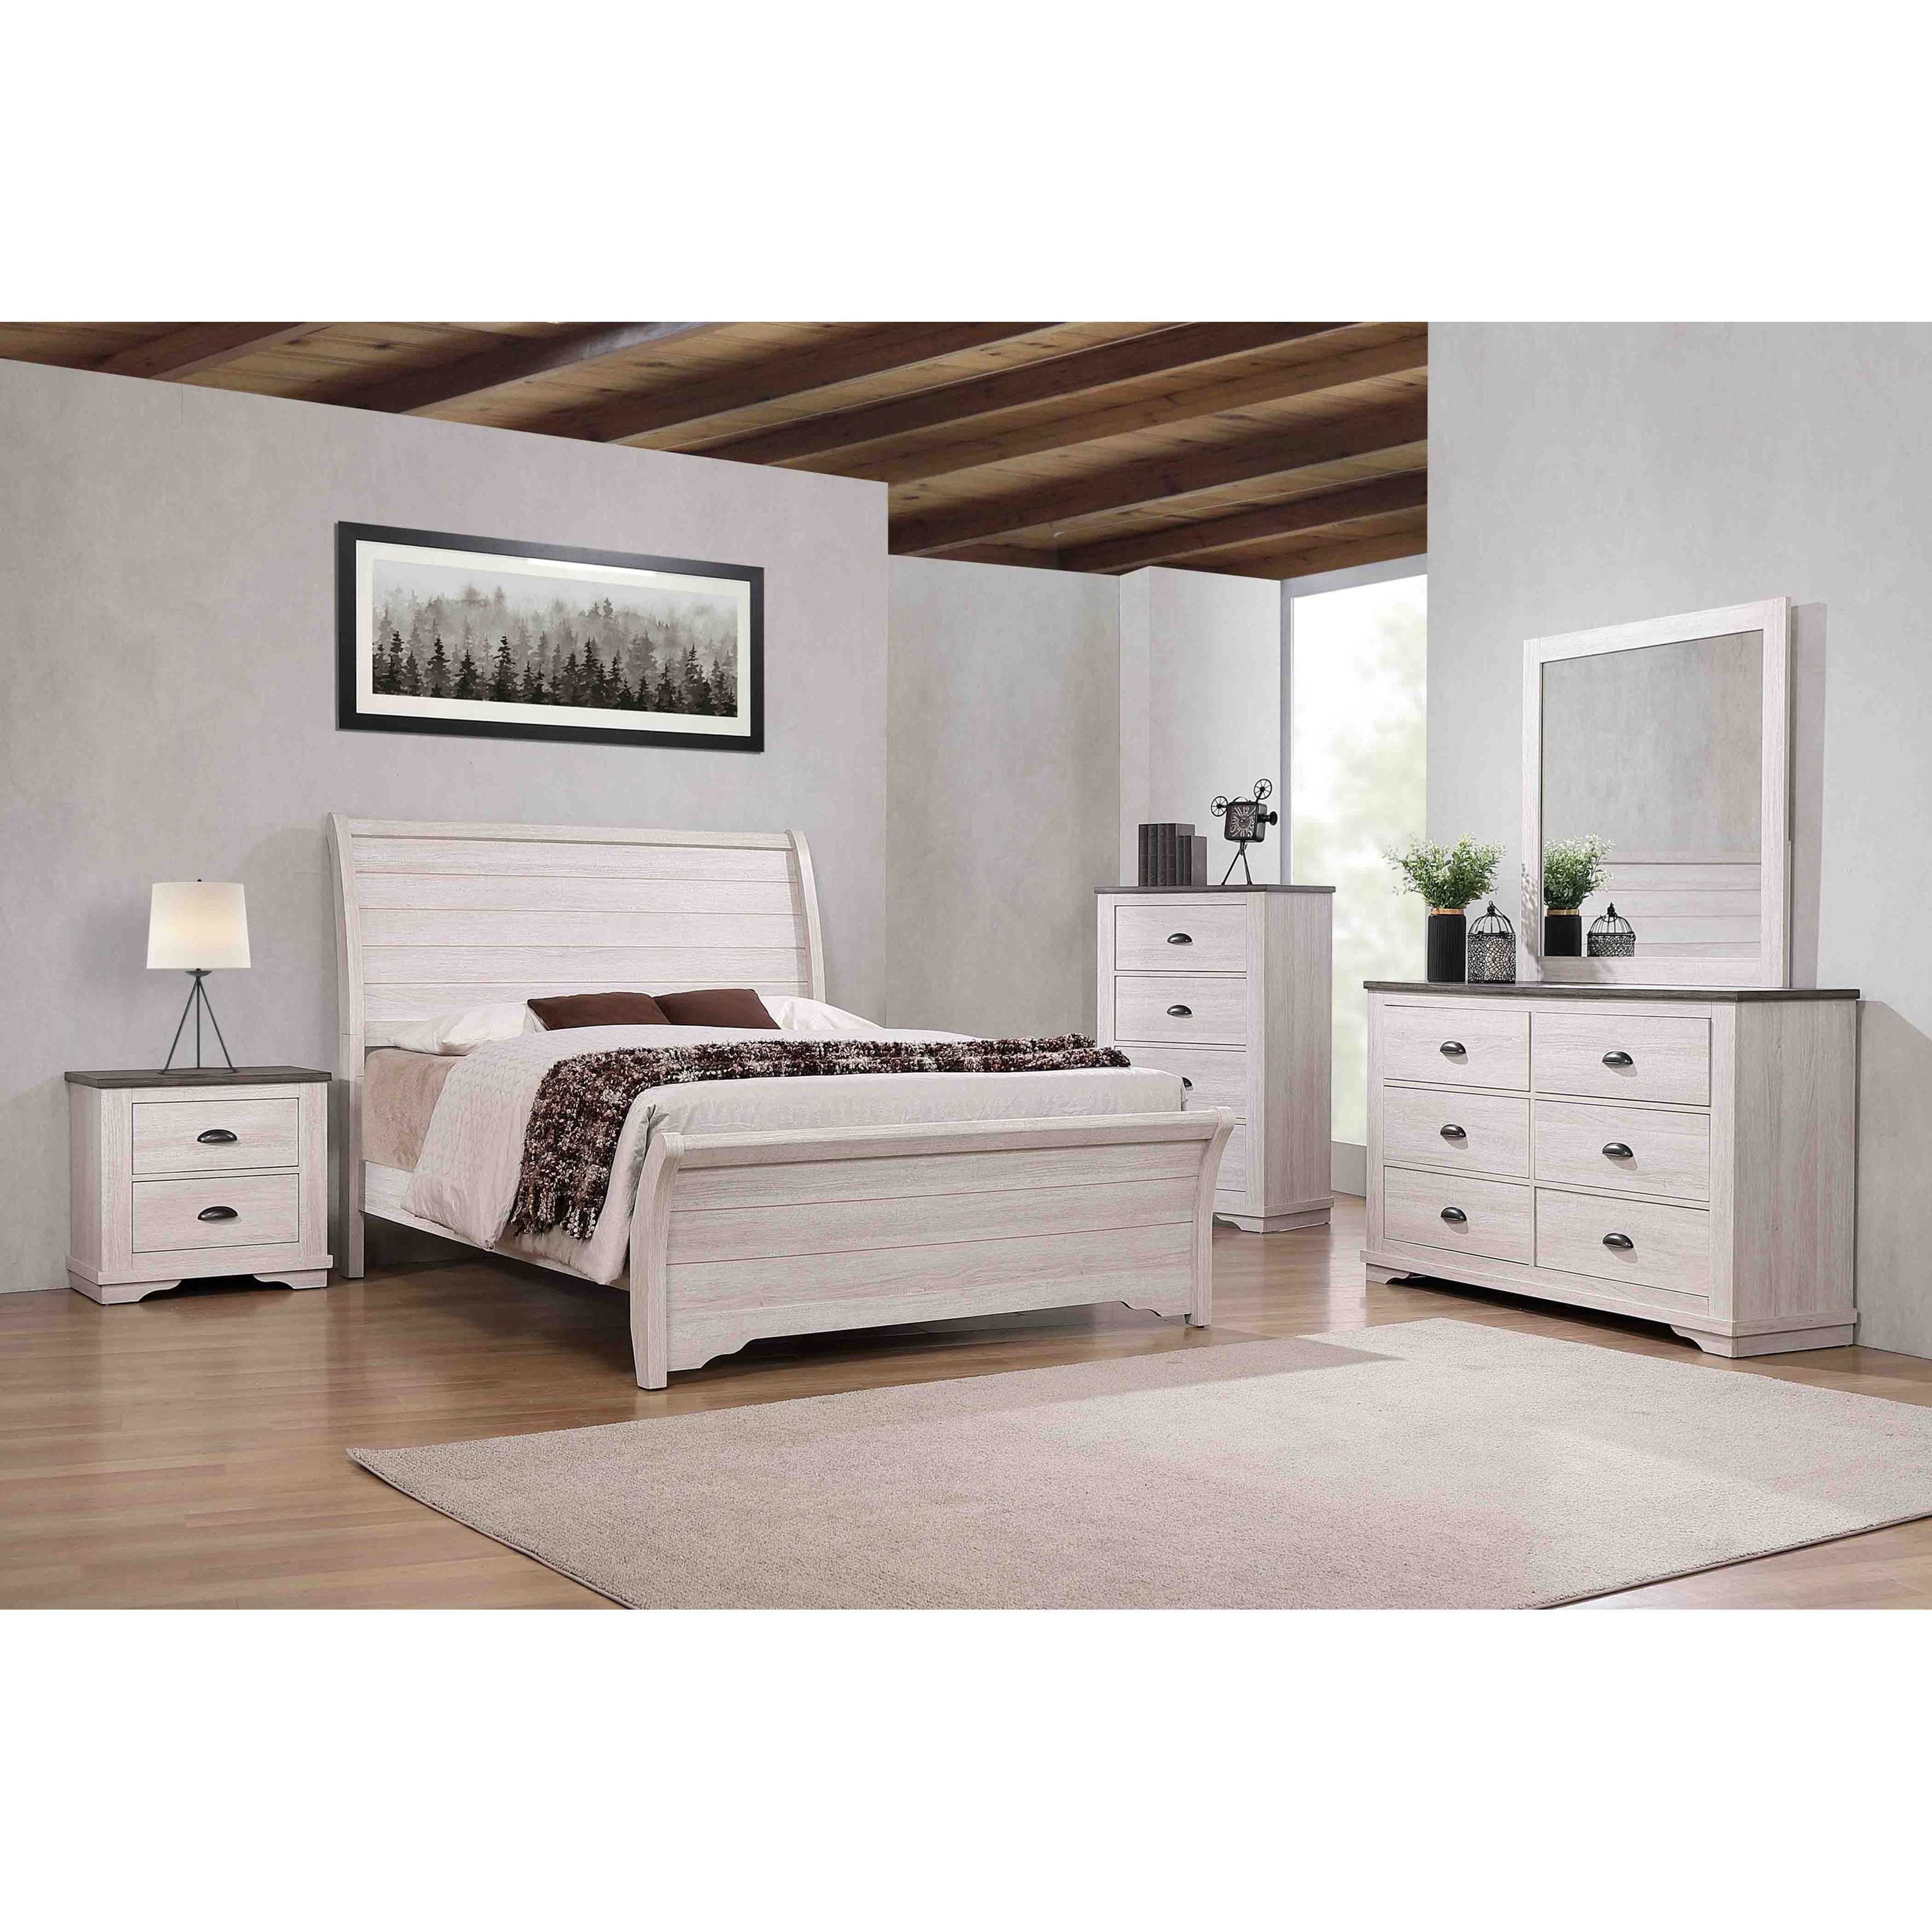 Coralee Queen Bedroom Group by Crown Mark at Wilcox Furniture